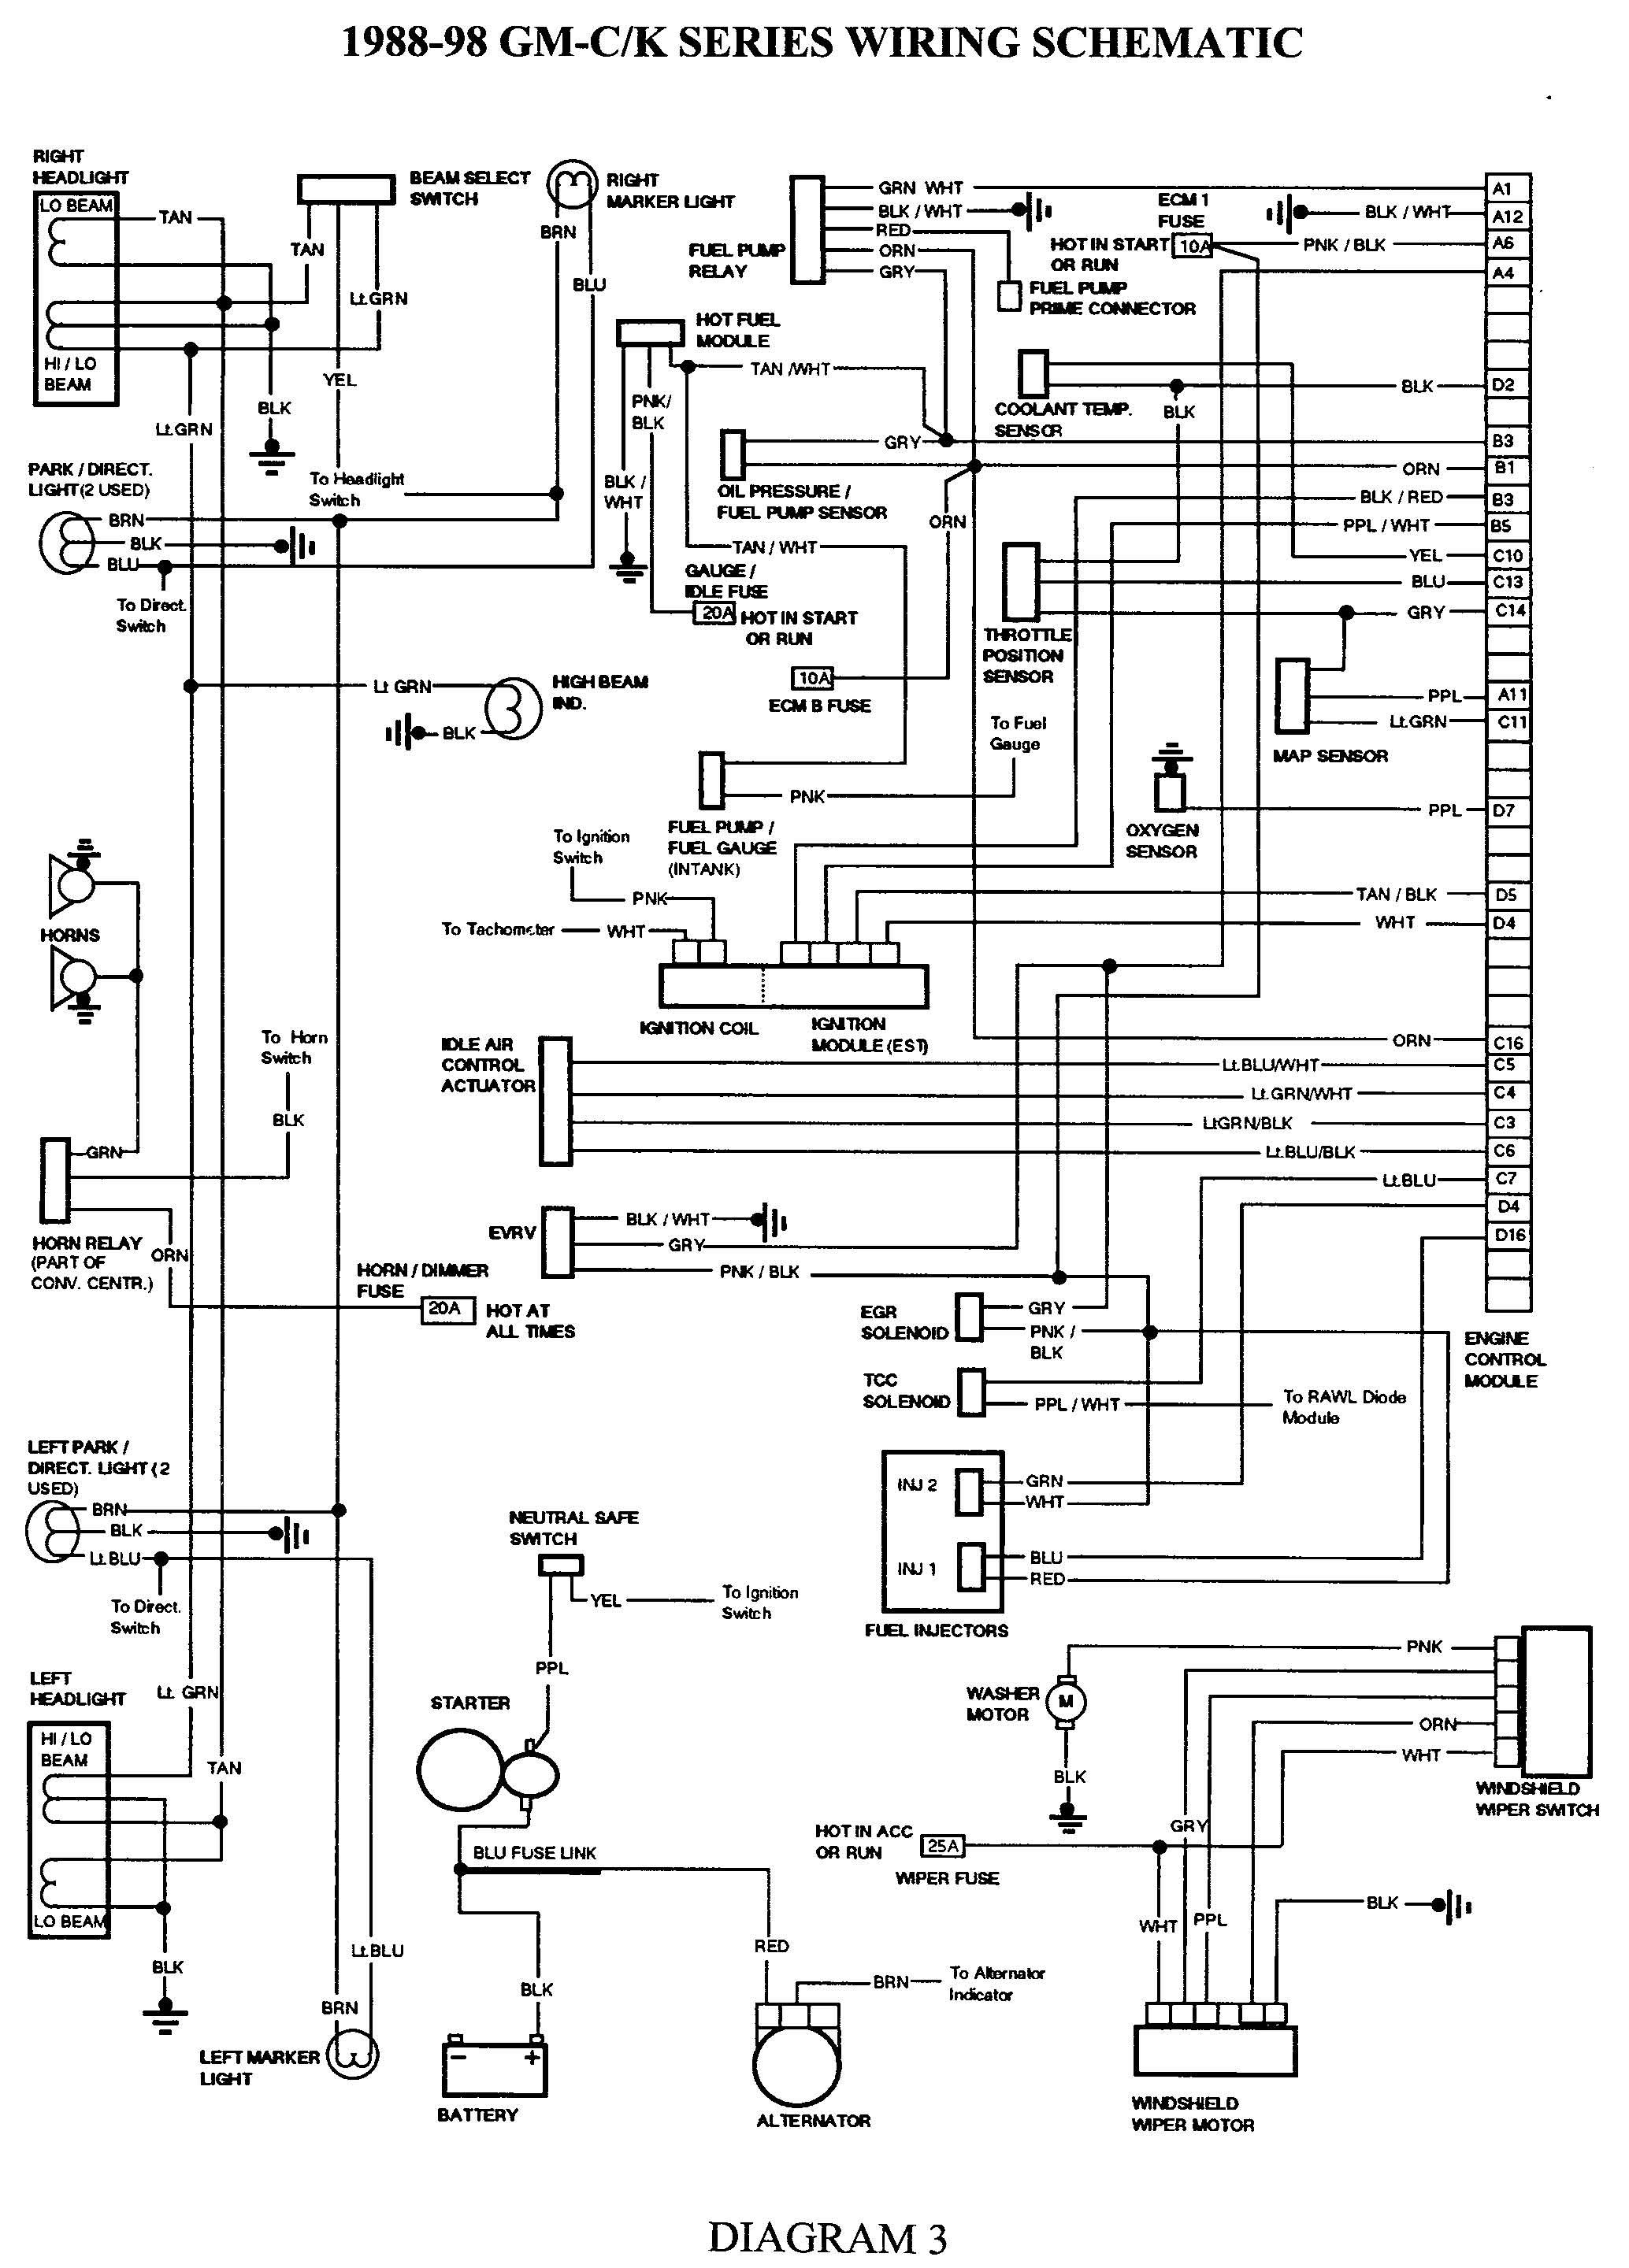 Pin on kc | Turn Signal Wiring Diagram 02 Gmc Savana |  | Pinterest